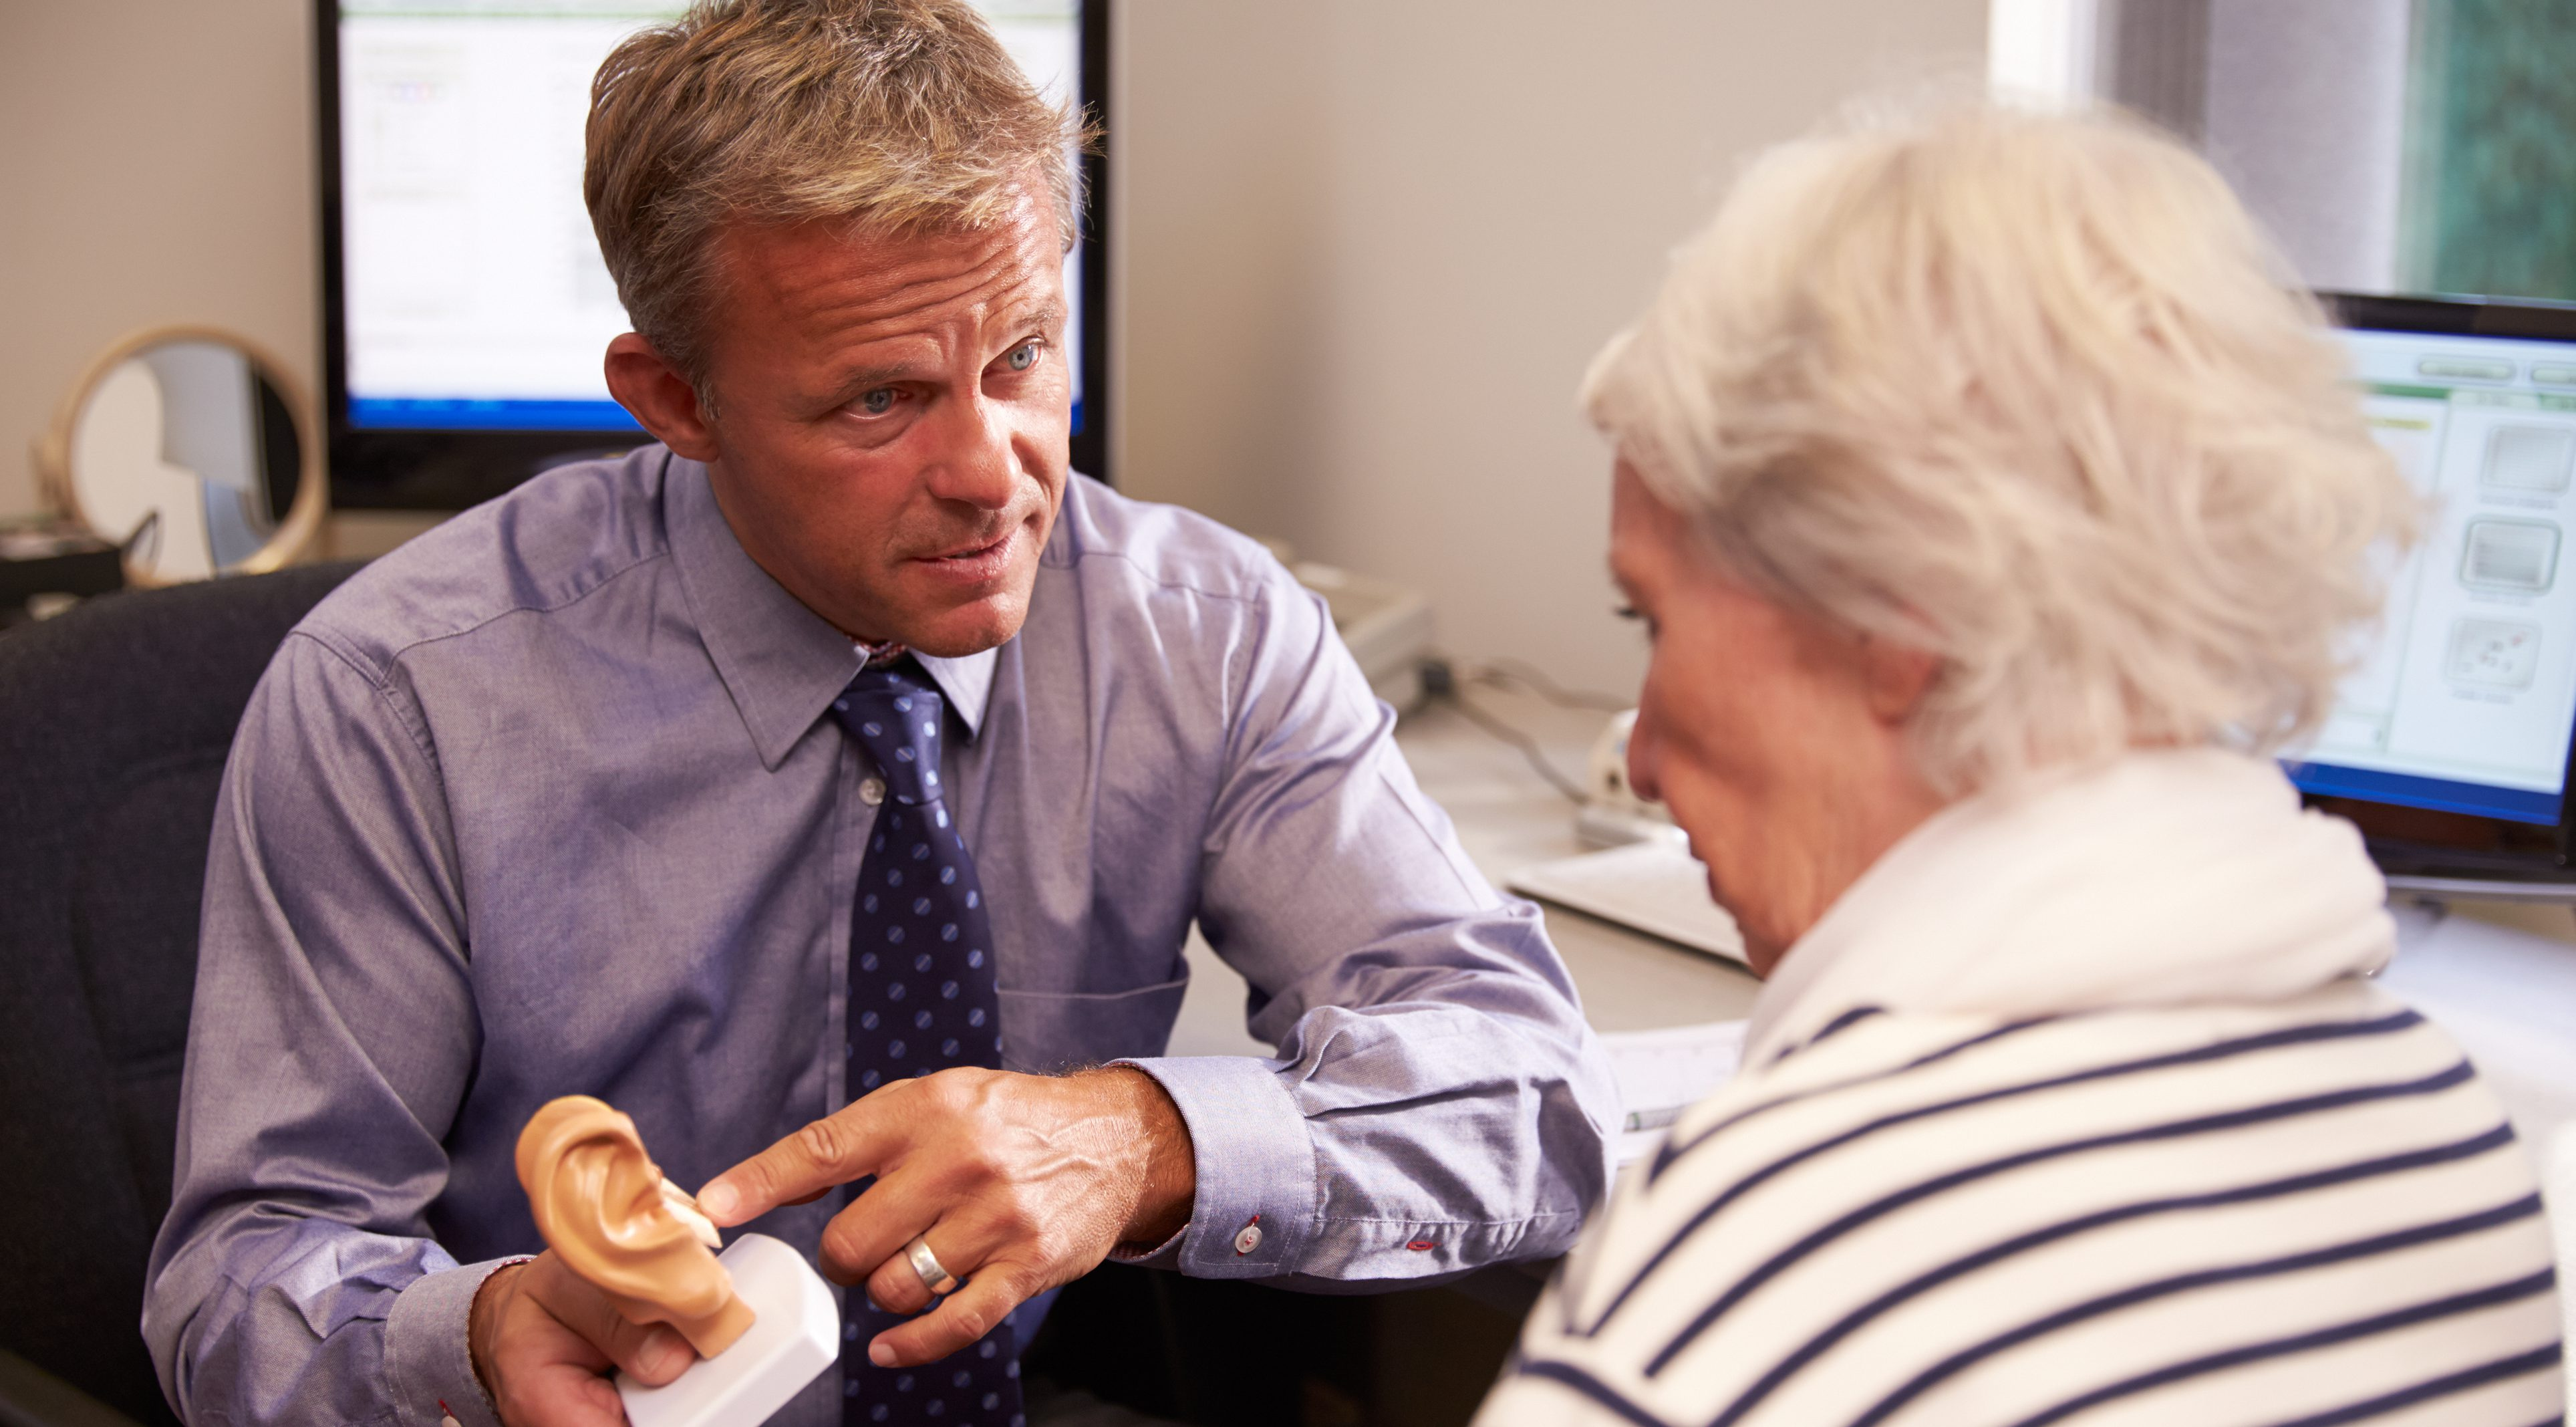 Doctor showing female patient a model of the human ear